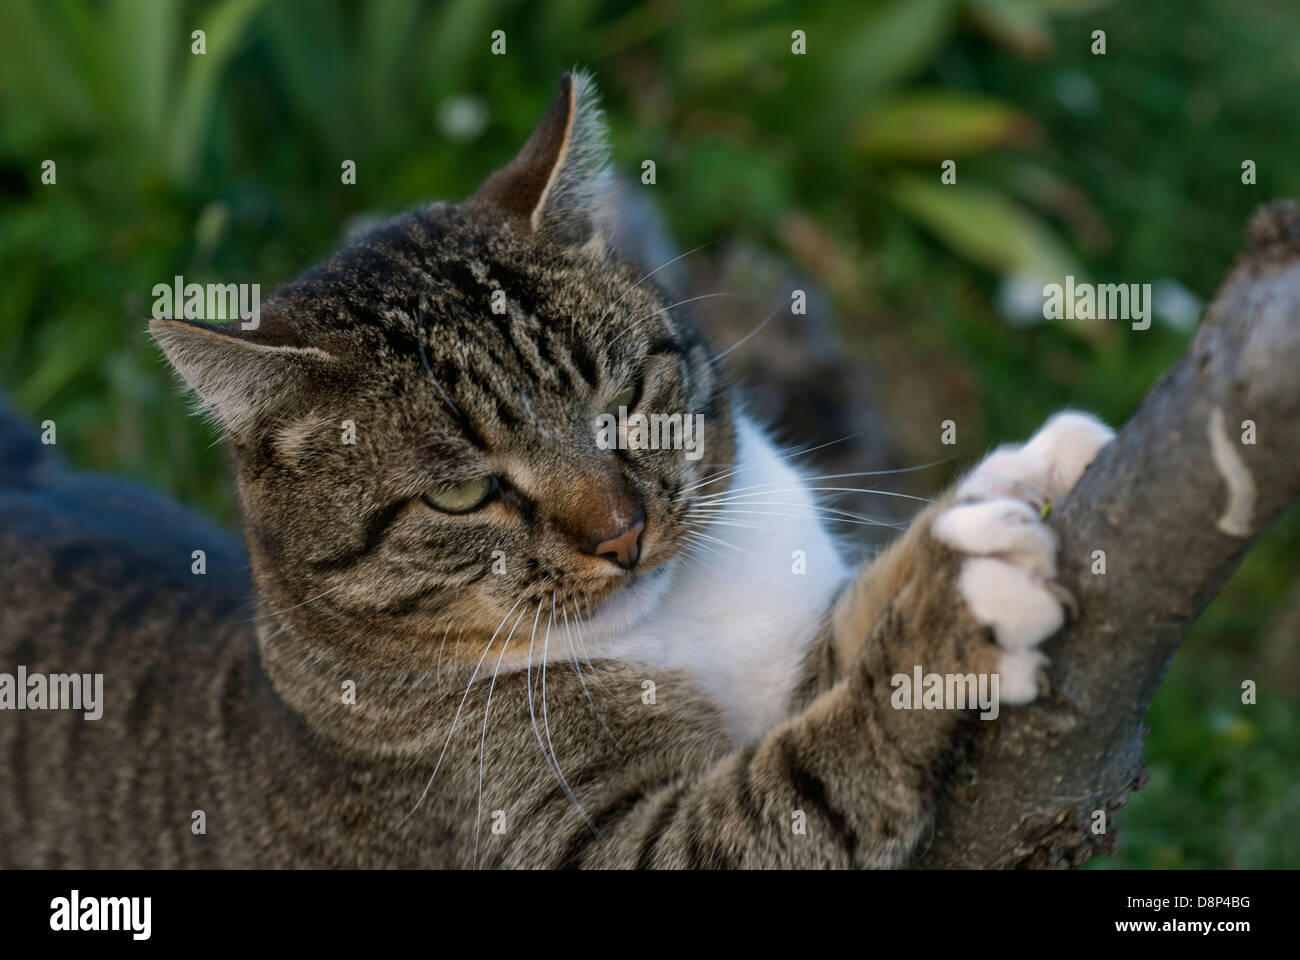 Tabby tomcat sharpening its claws at a tree - Stock Image